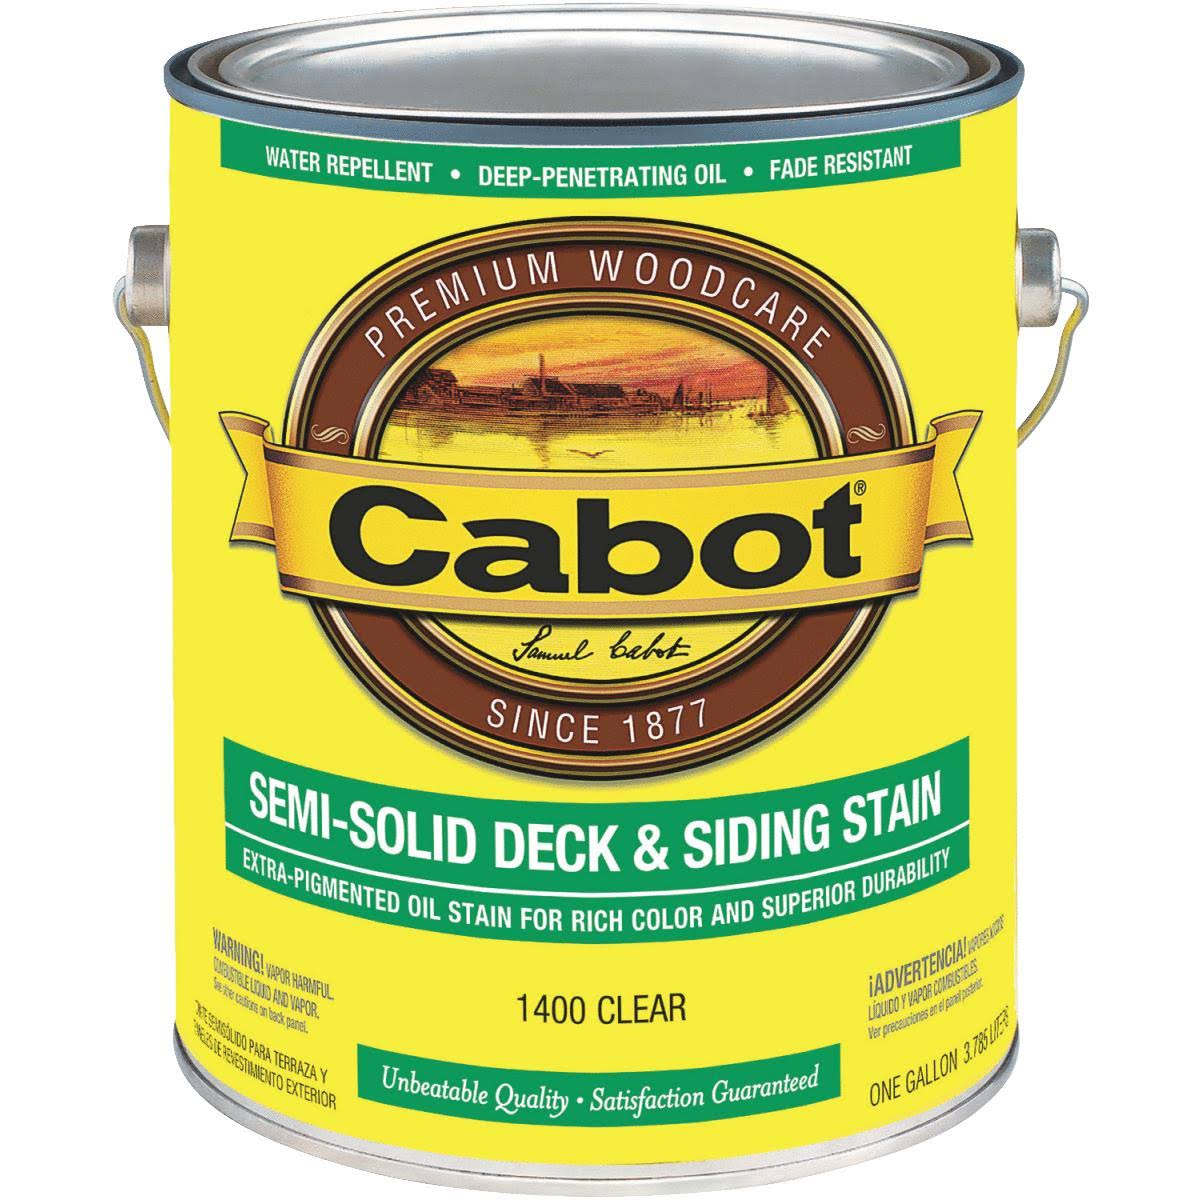 Cabot Semi-Solid Deck and Siding Stain - Clear, 1 Gallon